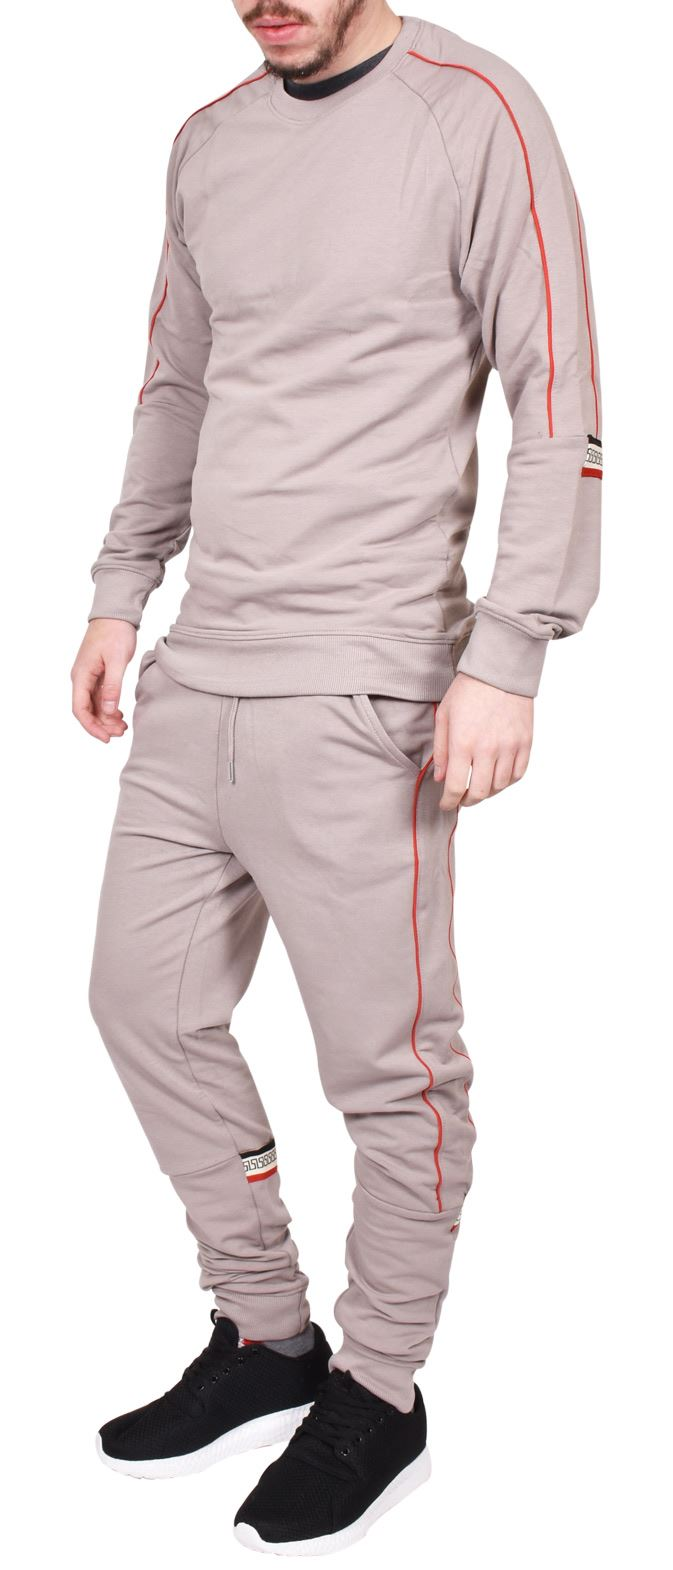 Mens Tracksuit Matching Shorts /& Long Bottoms Crew Neck Jogging Casual Workout